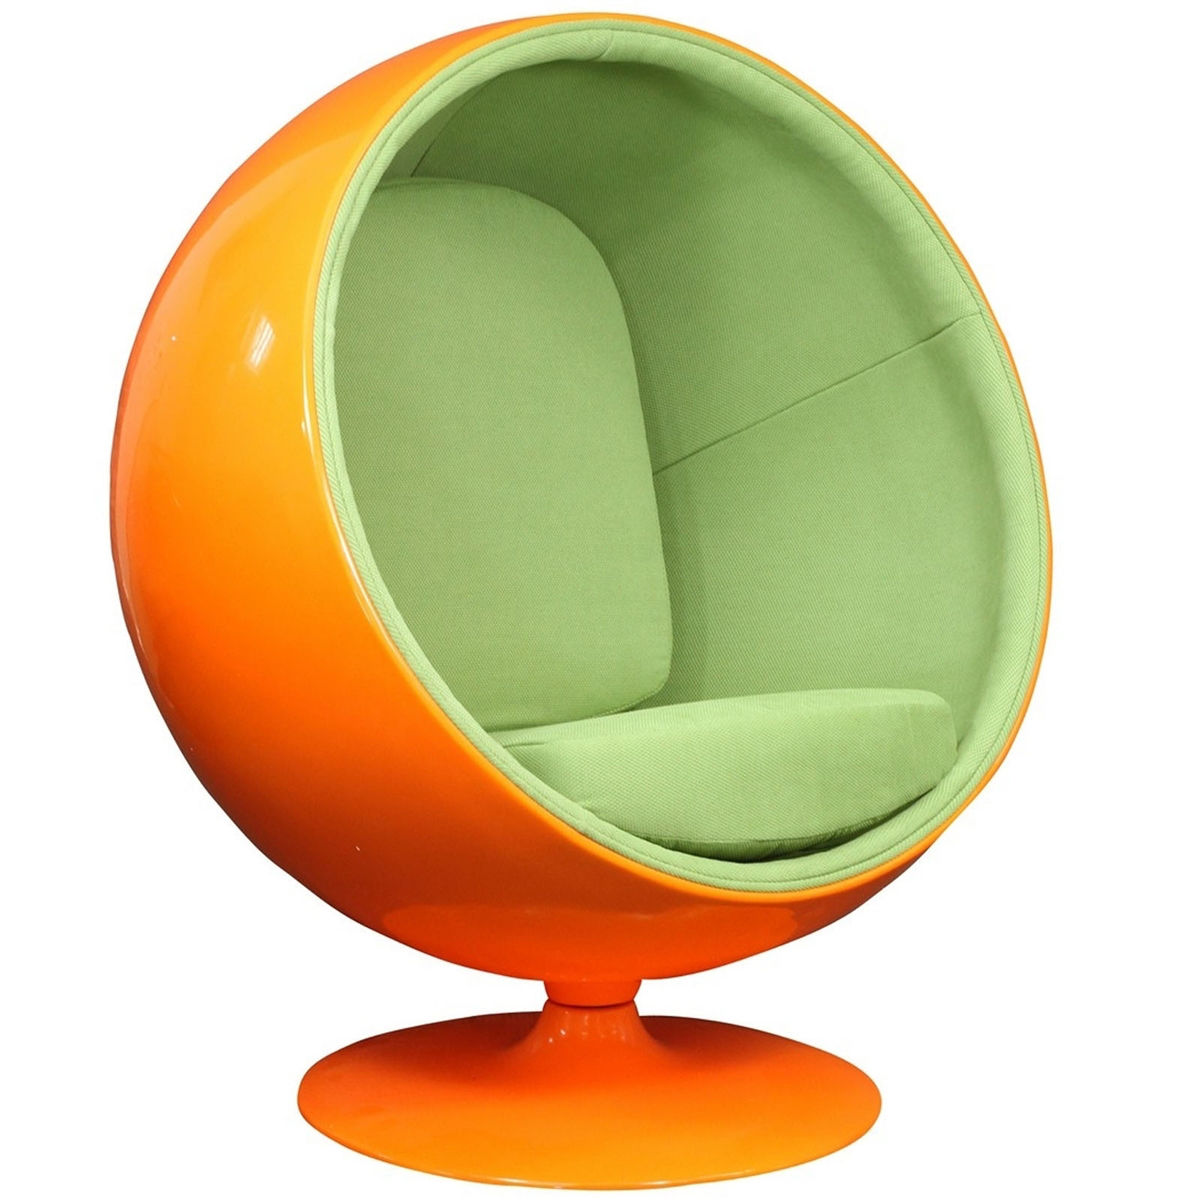 posture chairs exercise the pin improving pinterest ball mancave chair